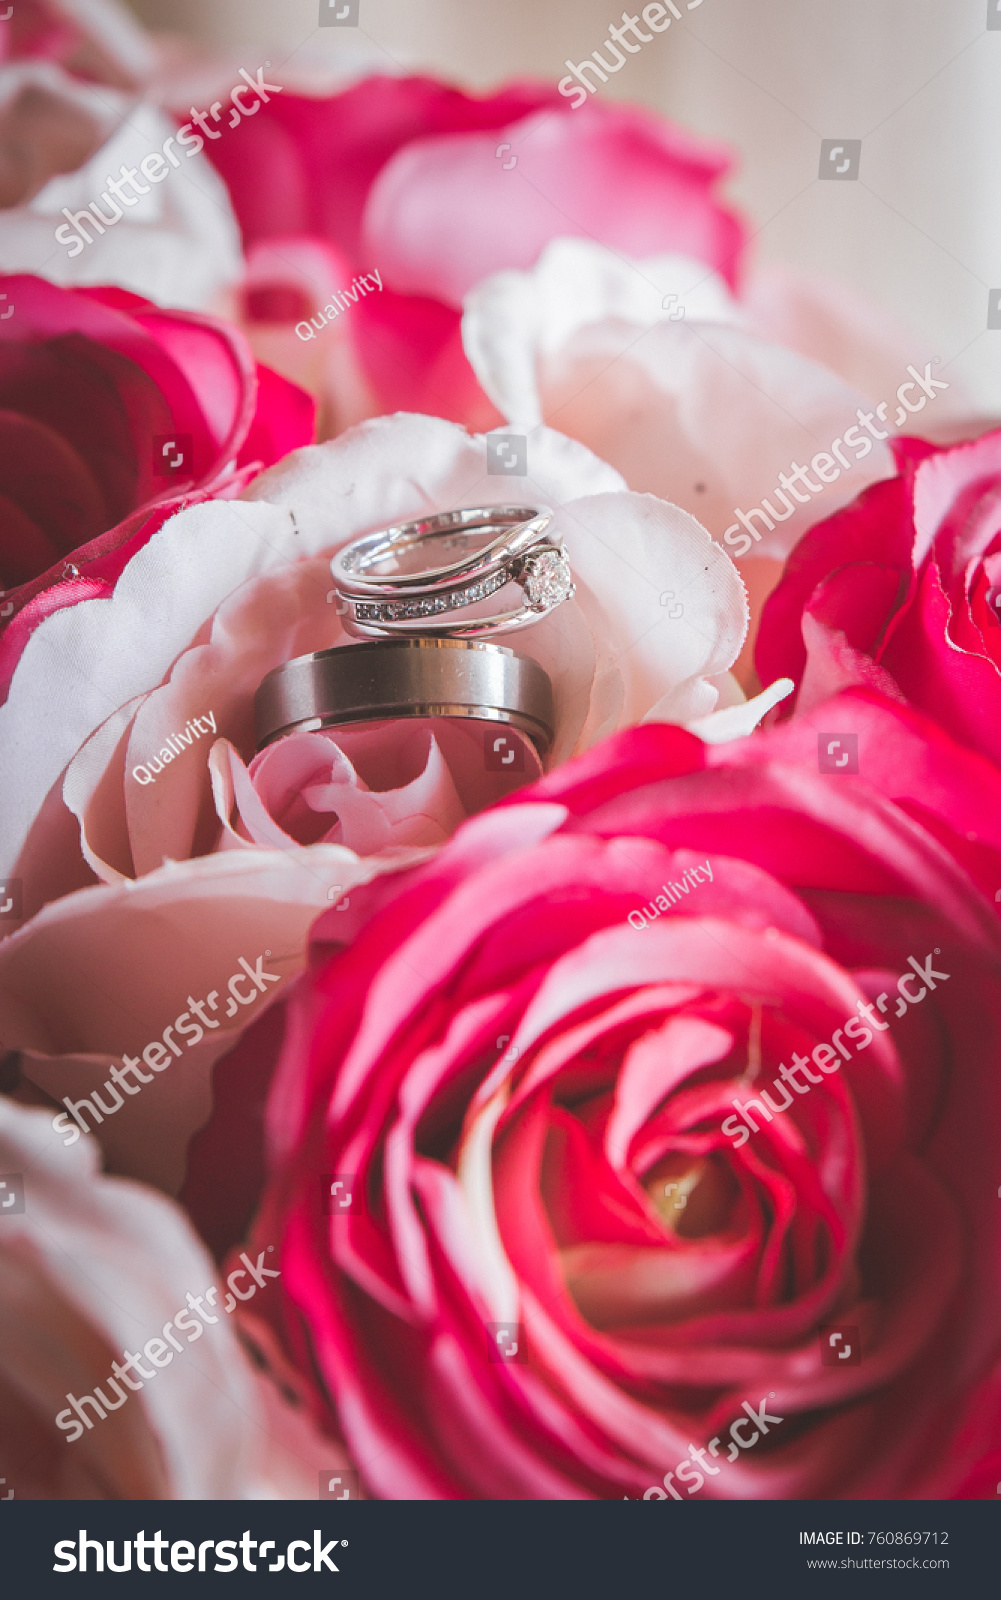 Wedding Rings Closeup On Bouquet Cerise Stock Photo (Royalty Free ...